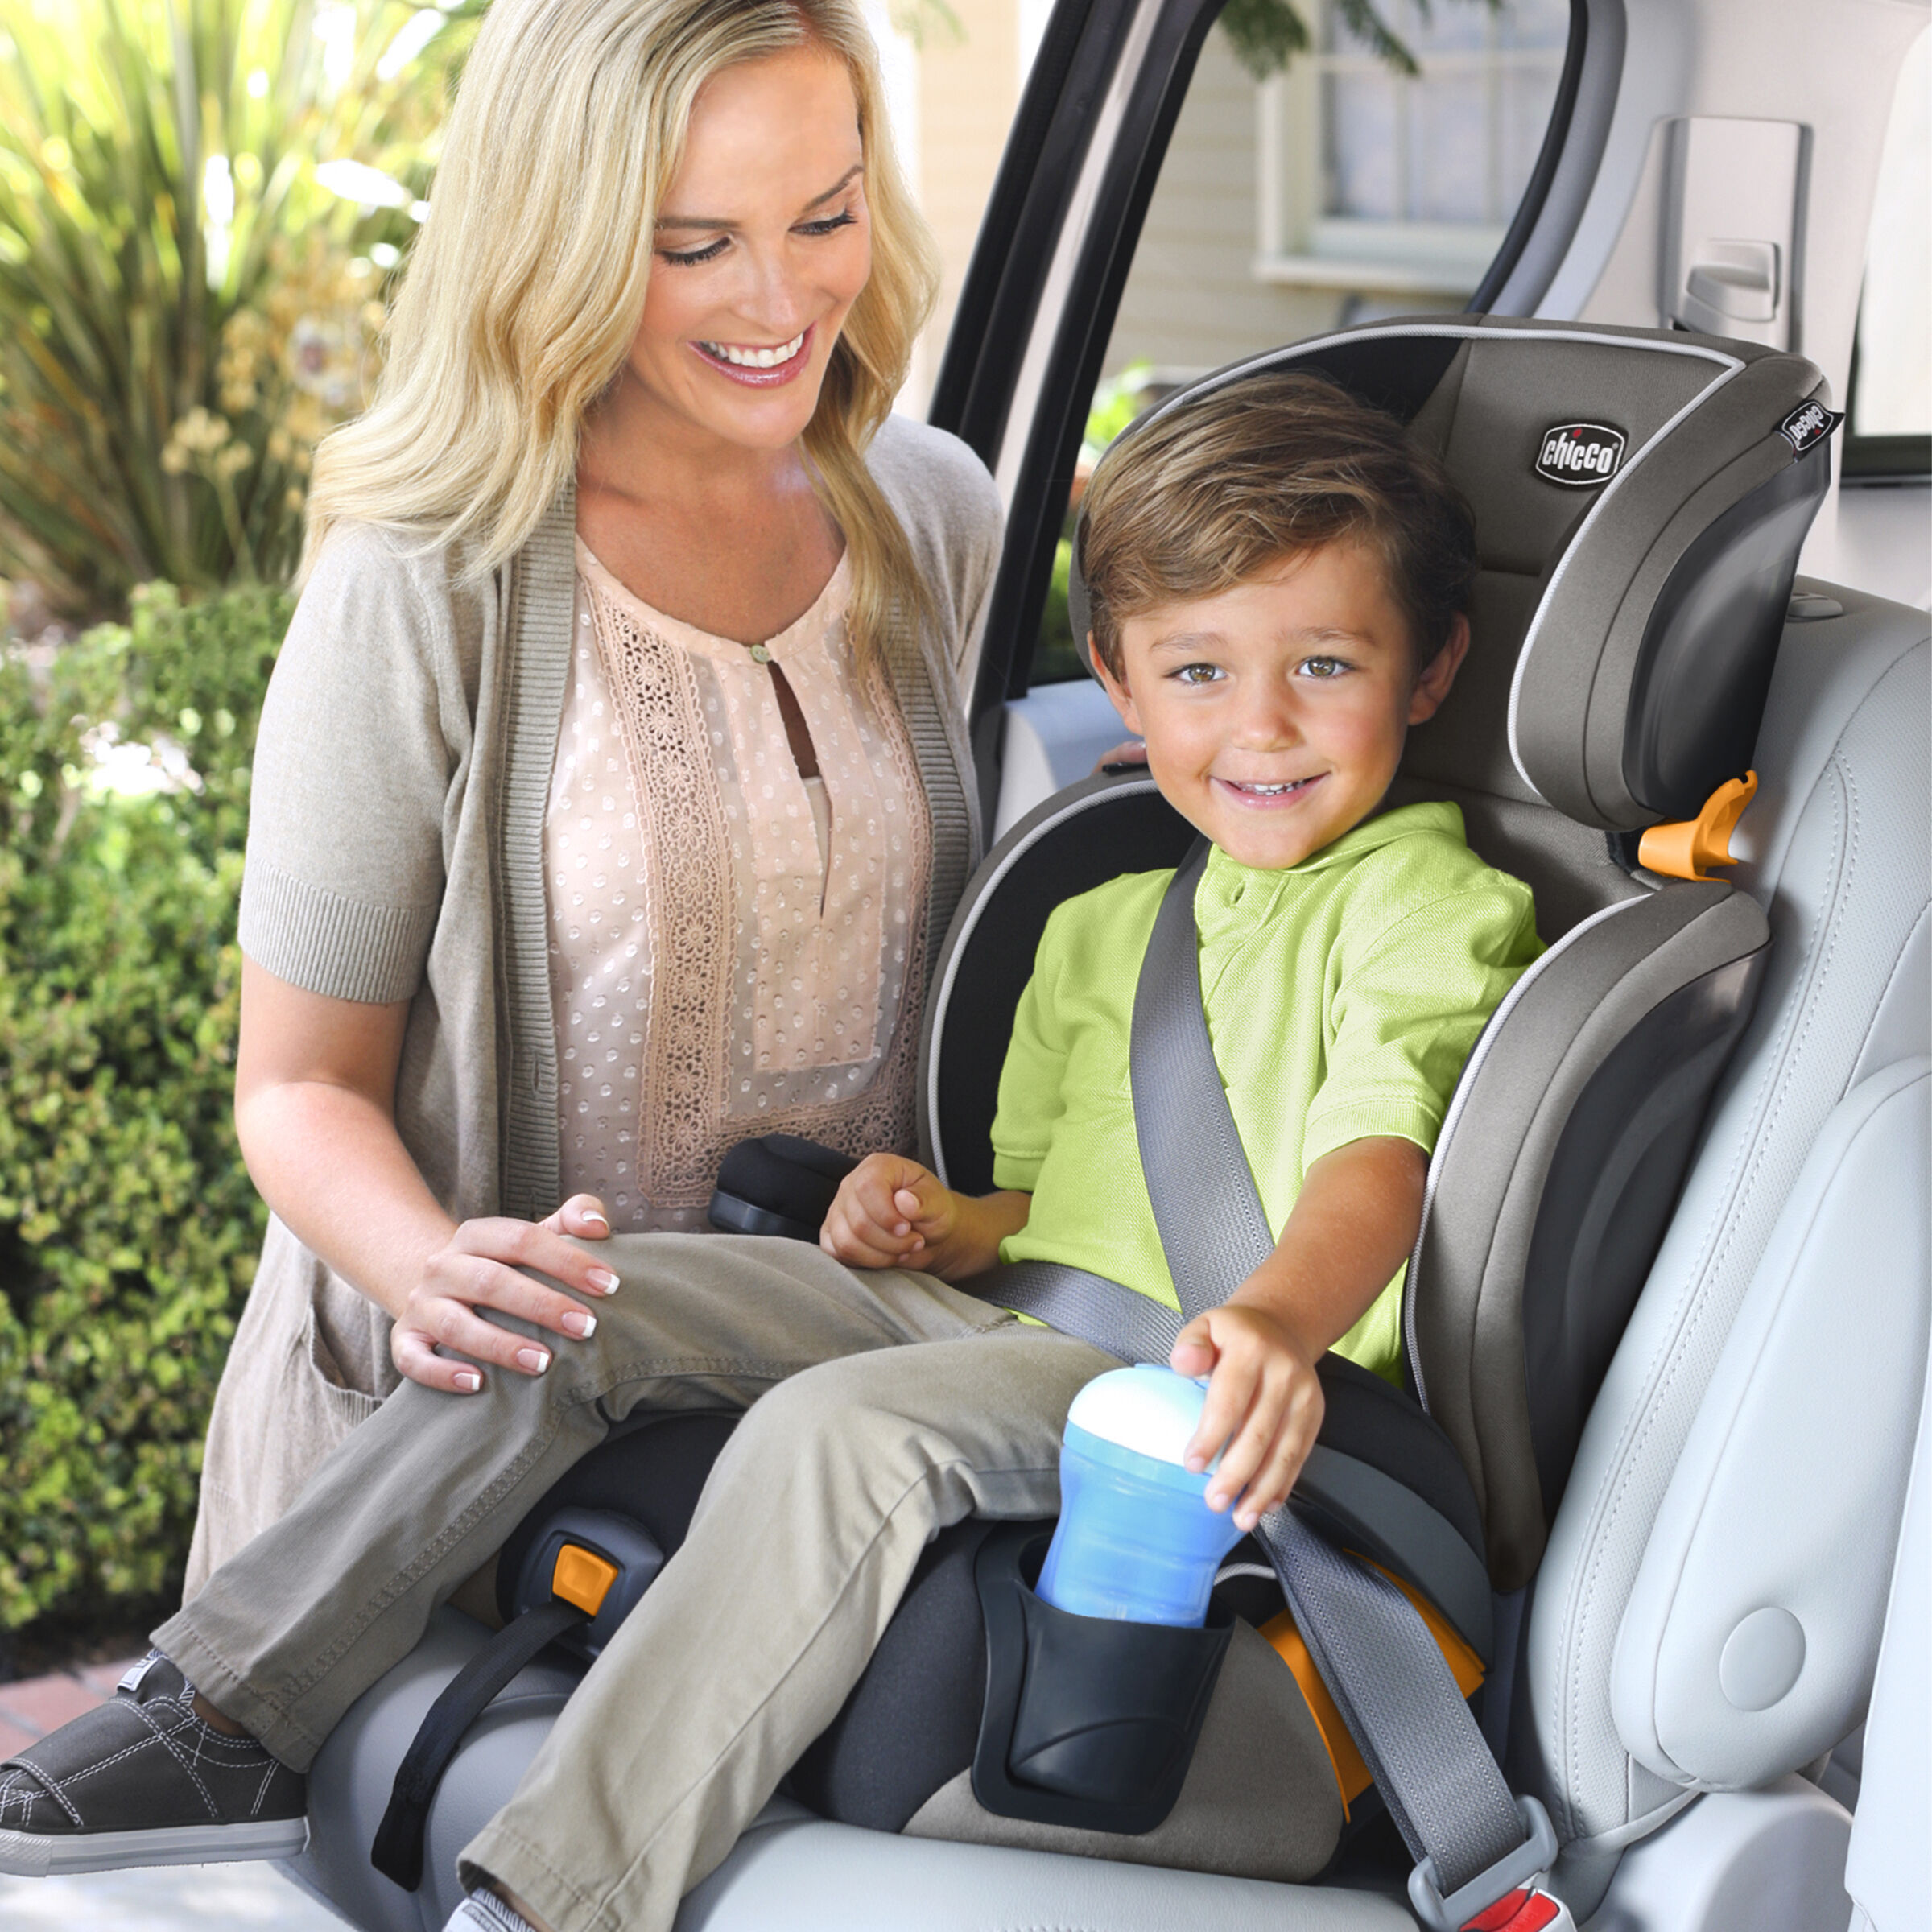 Baby Car Seats At Target Chicco Kidfit 2 In1 Belt Positioning Booster Seat